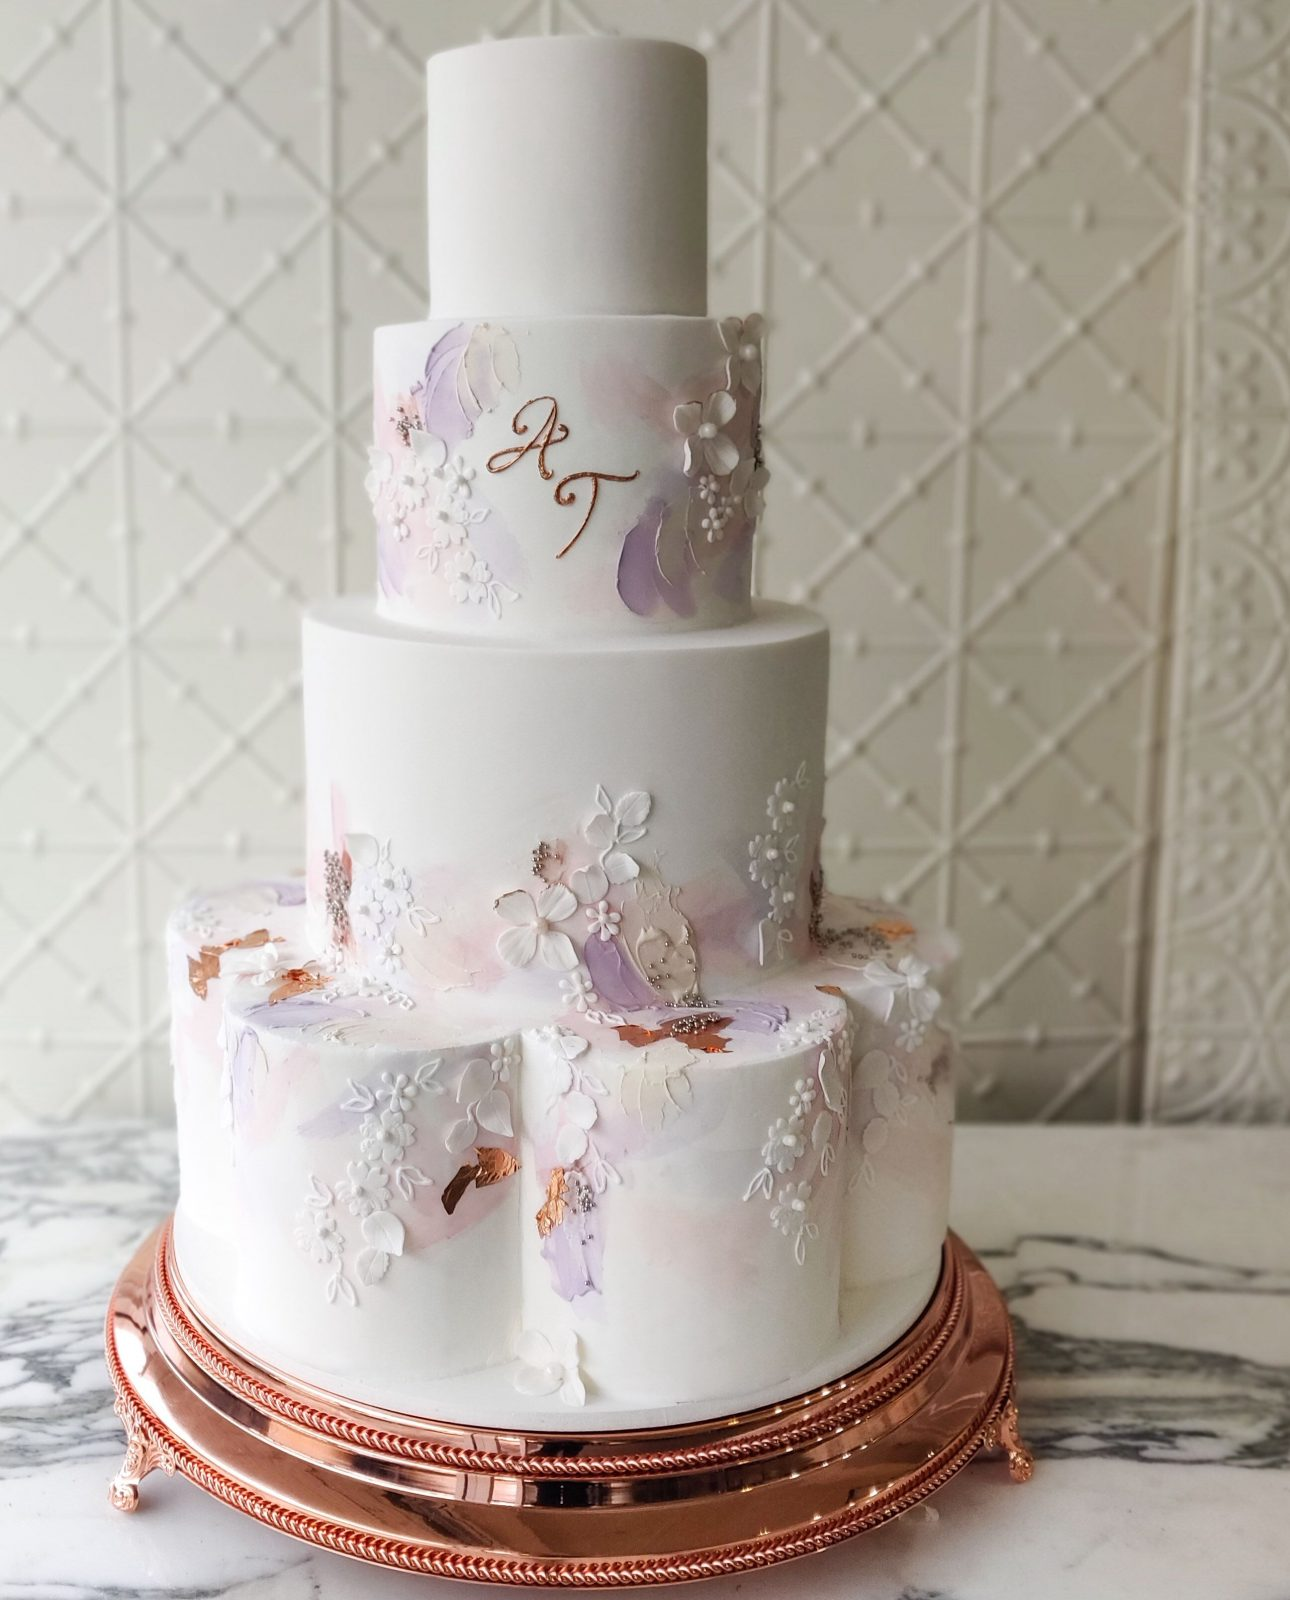 Faye Cahill Wedding Cake Inspiration